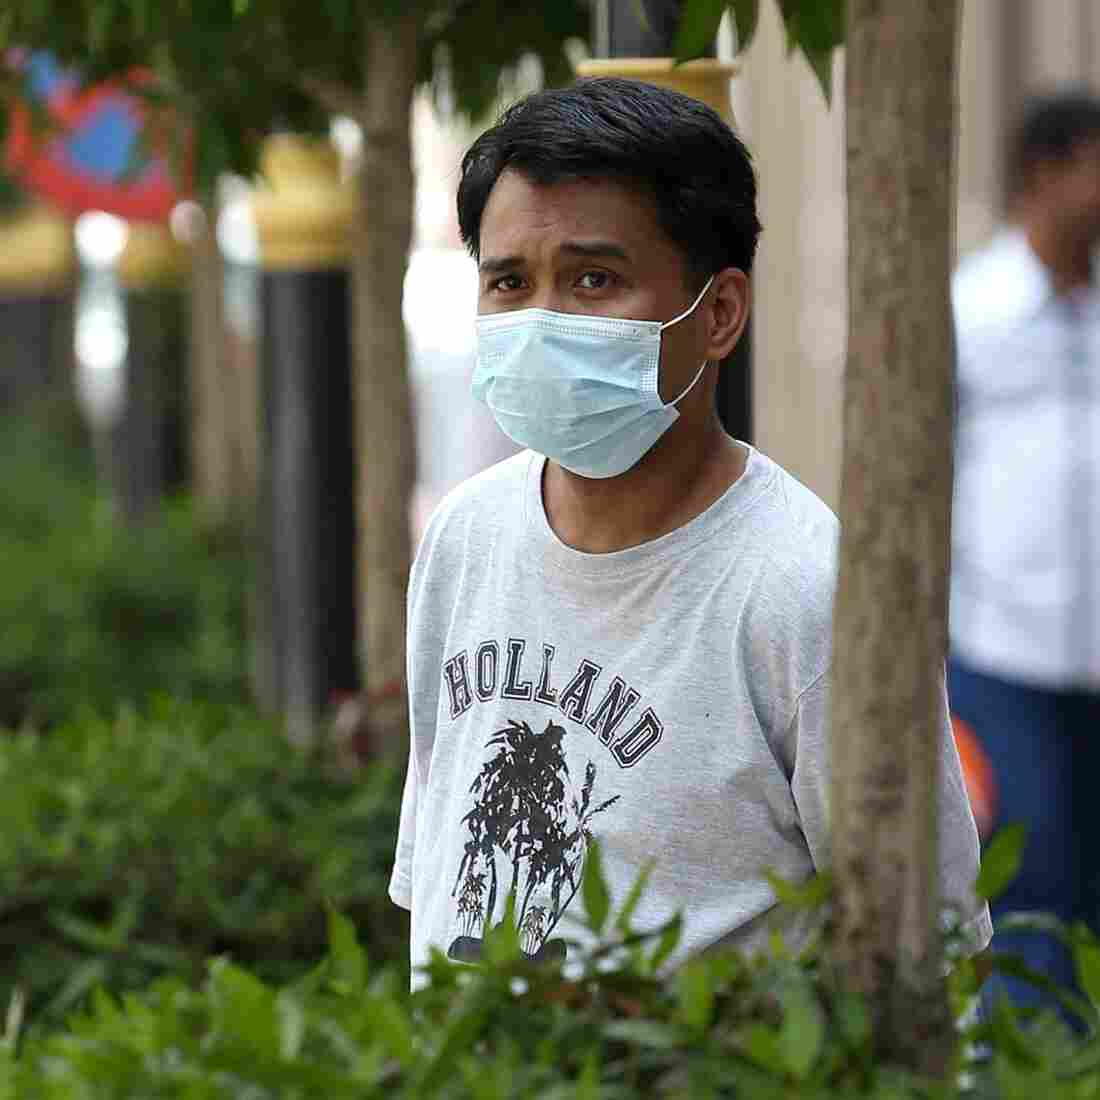 Fear of MERS is prompting Saudis to wear mouth and nose masks, like this man on the street of the Red Sea coastal city of Jeddah on April 27.